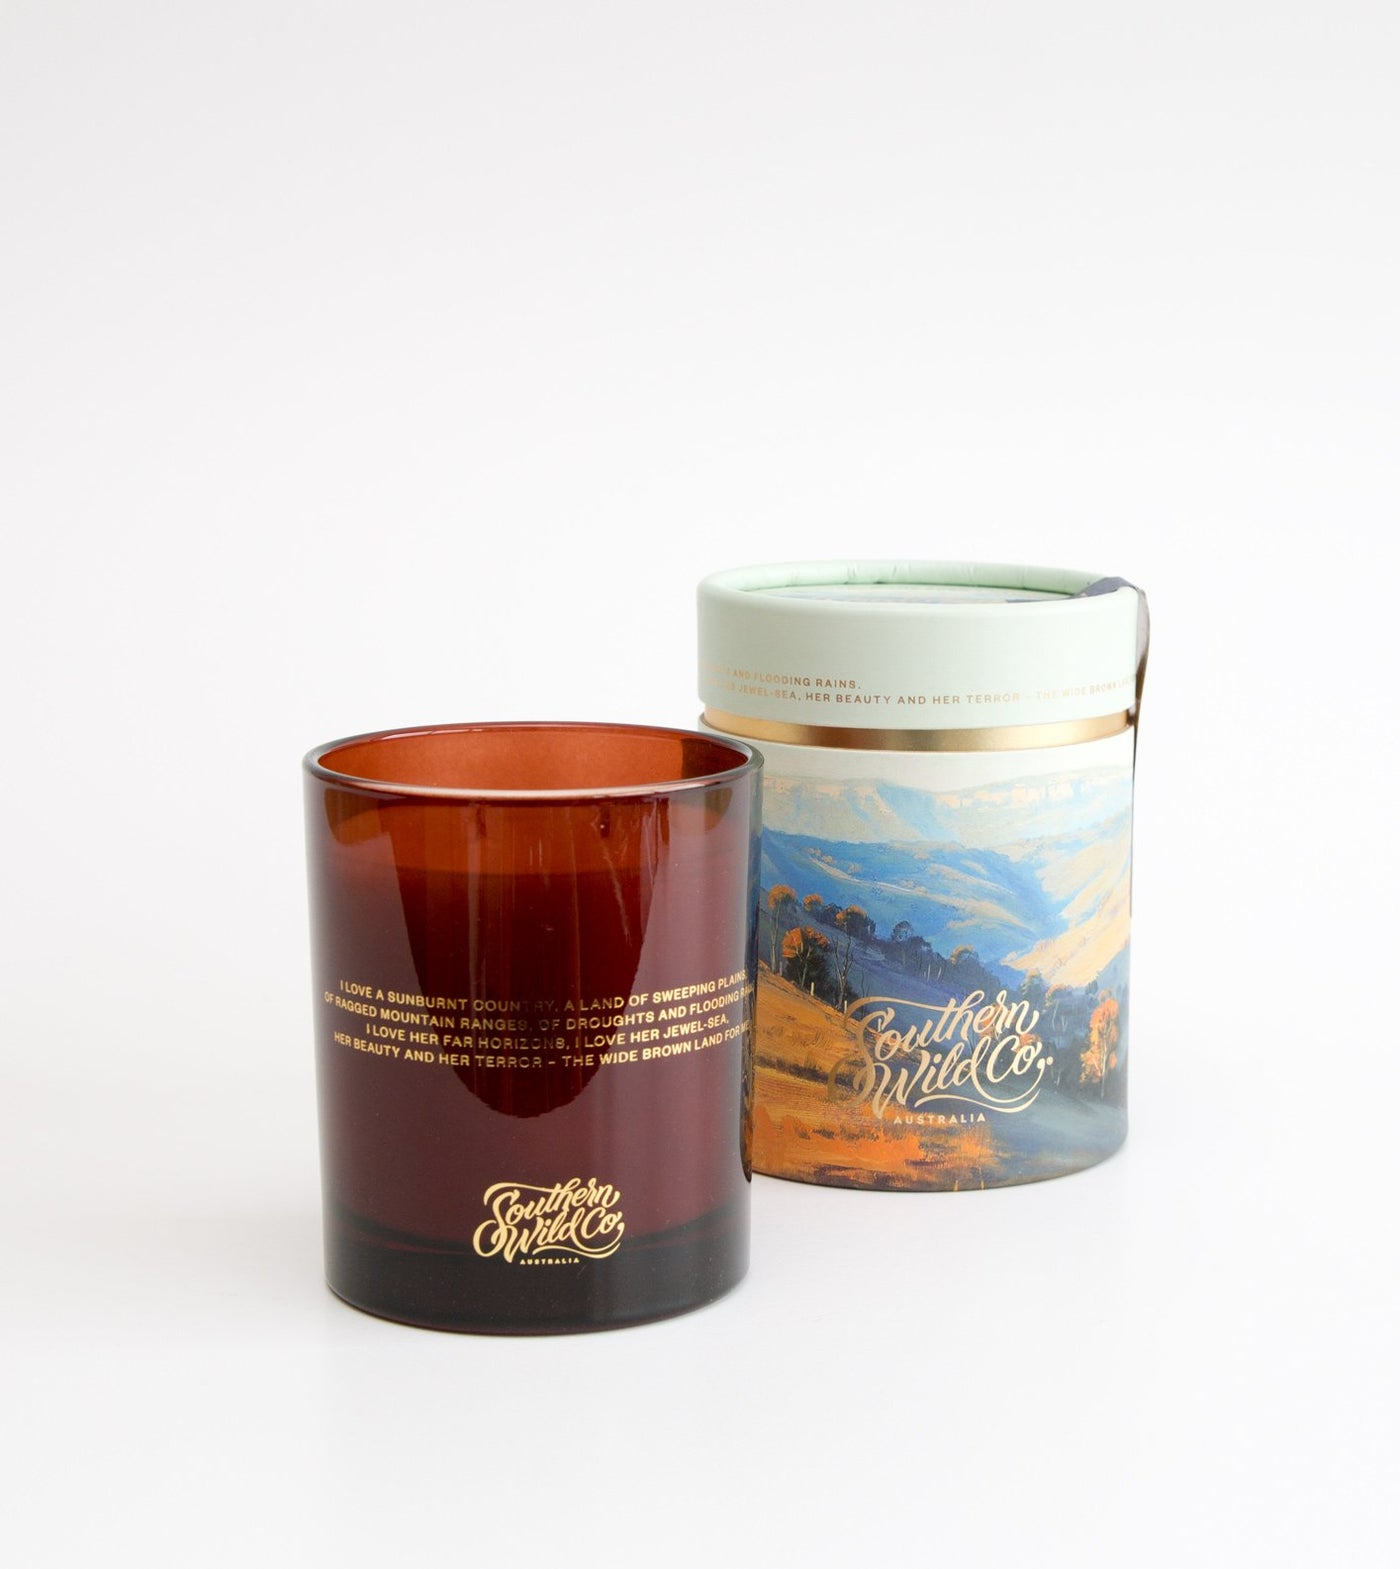 scented candle australia, australia candle, best scented candle Australia, southern wild candles